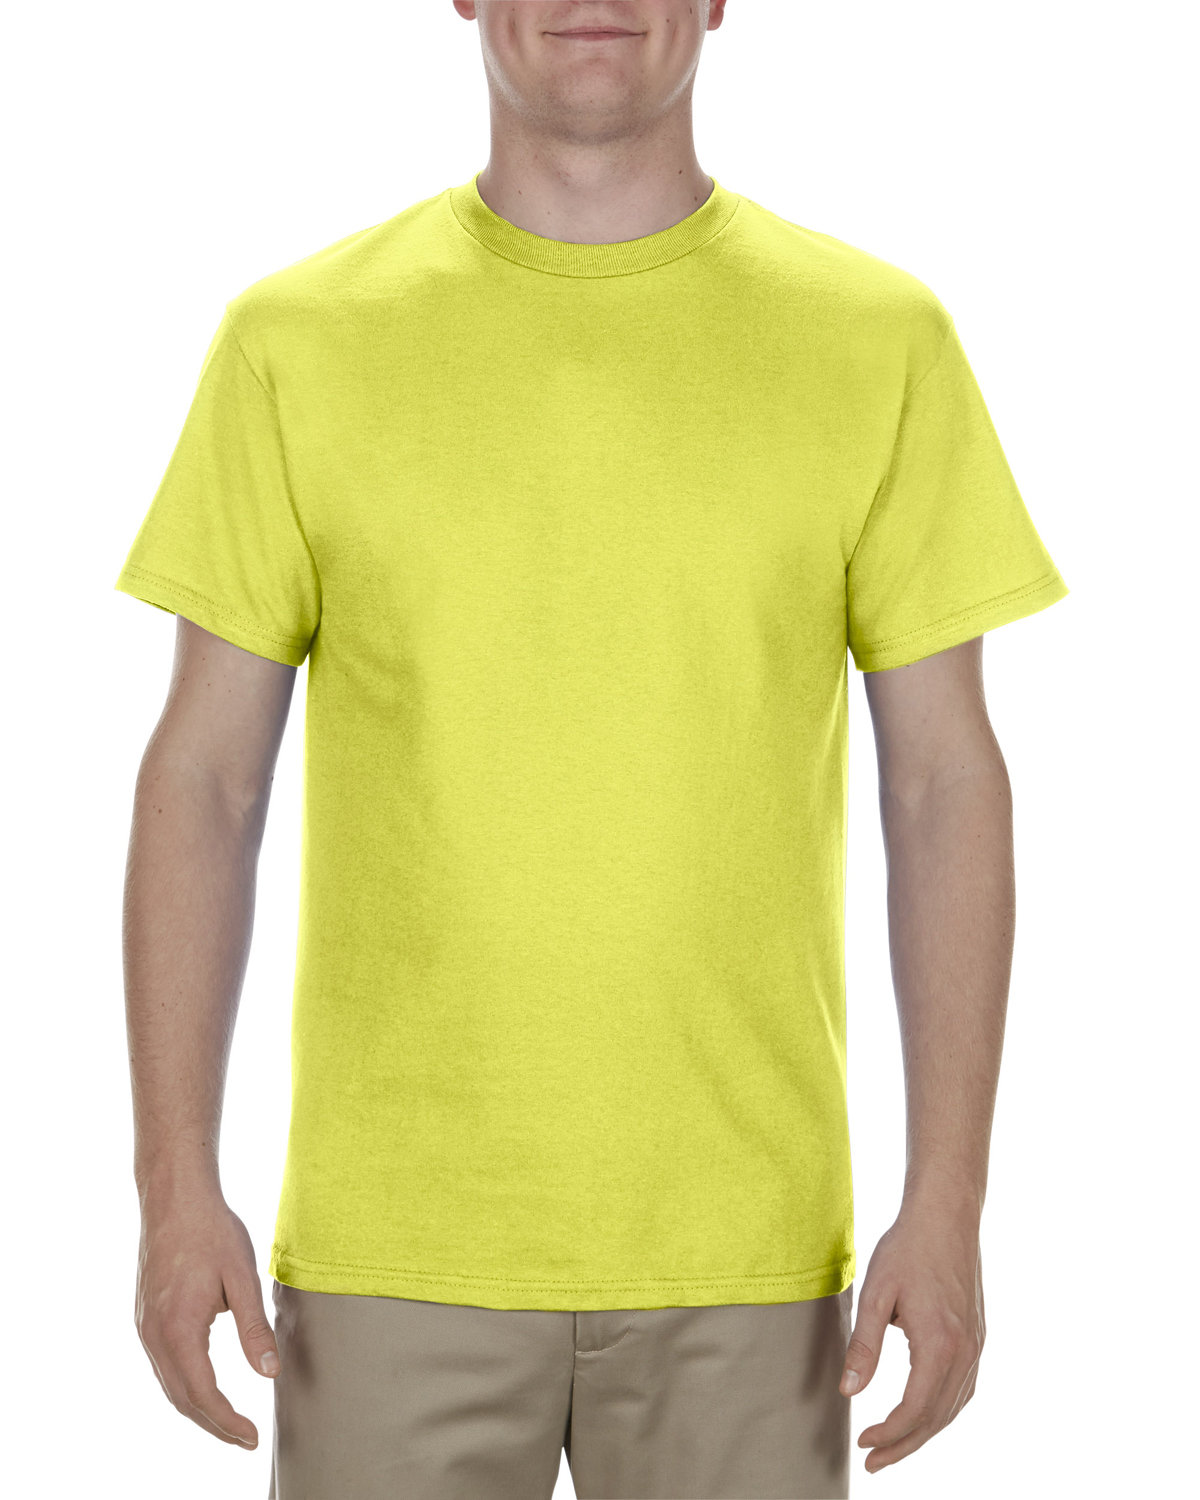 Alstyle Adult 5.1 oz., 100% Cotton T-Shirt SAFETY GREEN